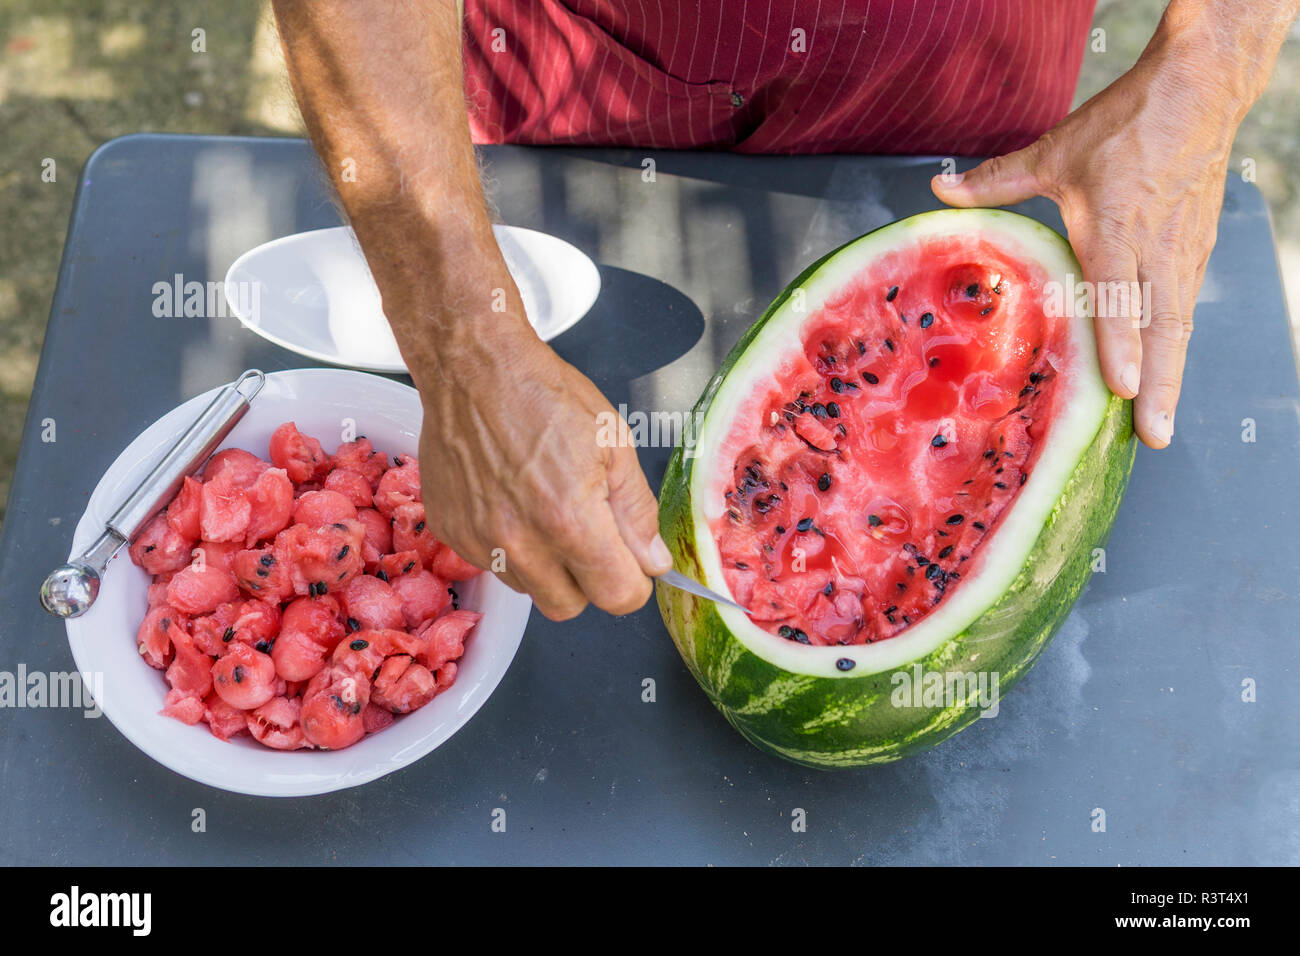 Close-up of man decorating a watermelon with carving tool - Stock Image